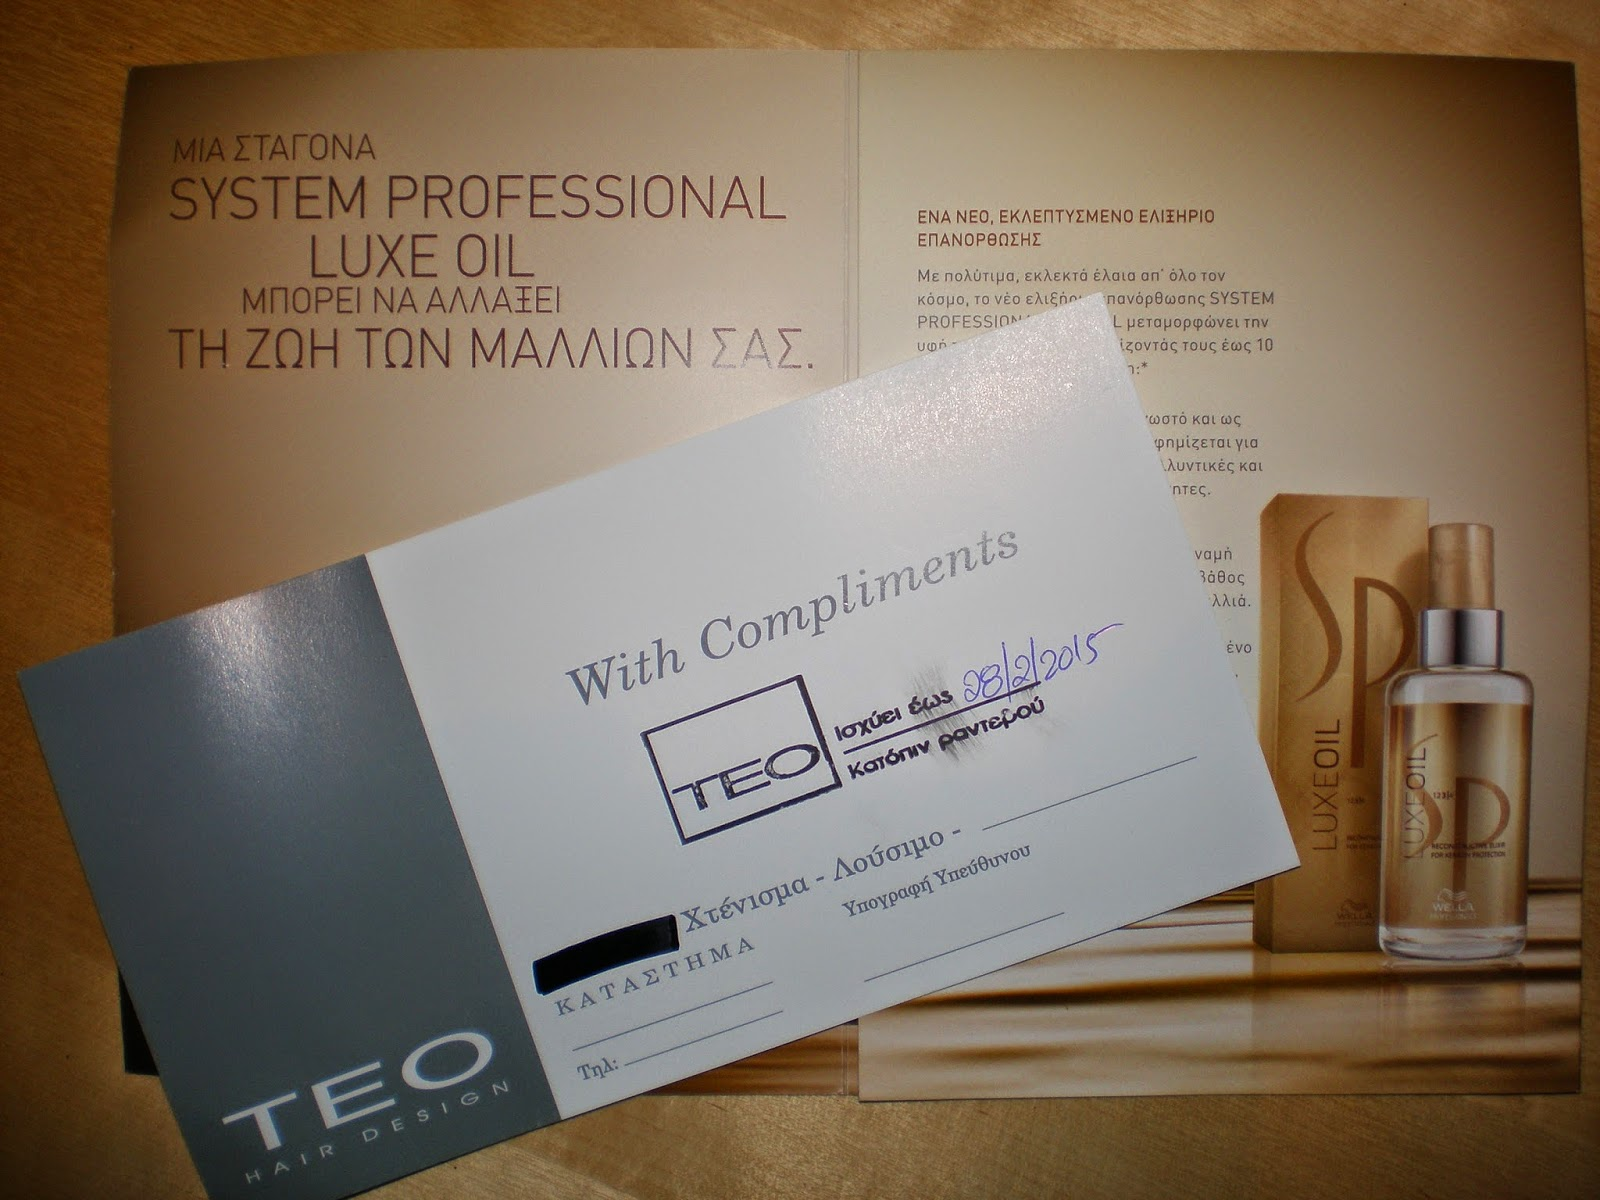 Teo Hair Design gift voucher